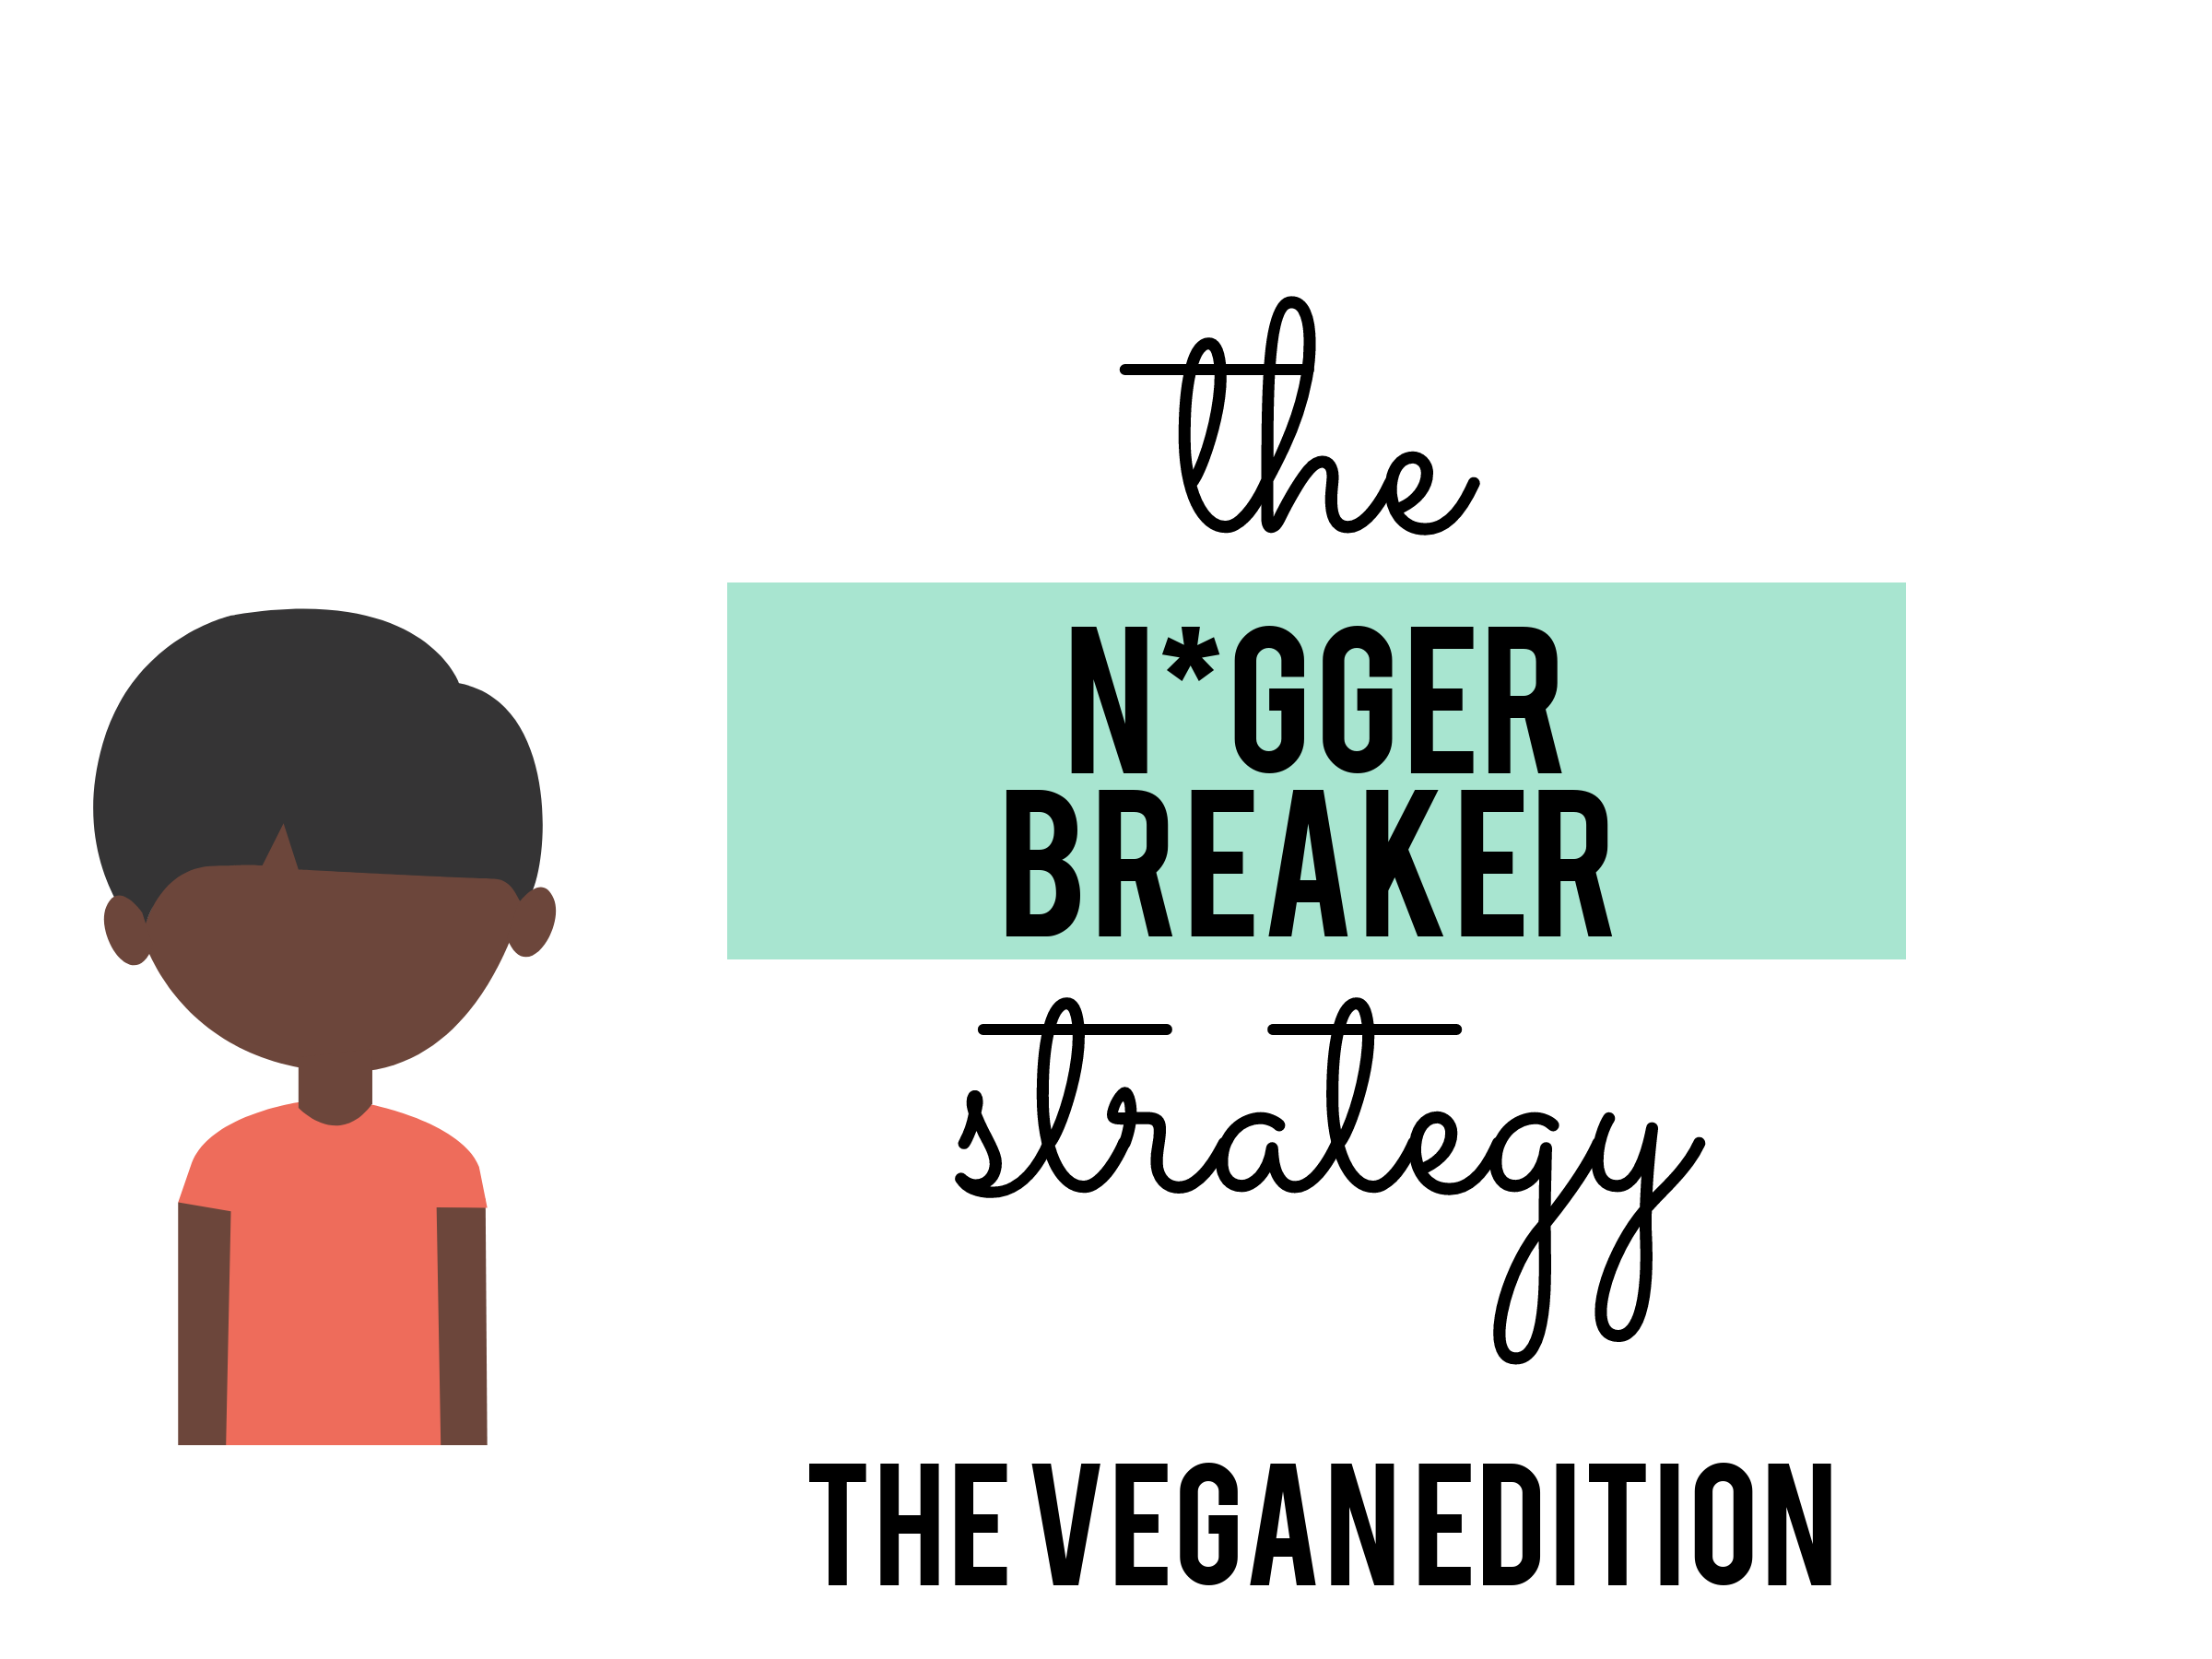 The Return of the N*gger Breakers: The [White Racist] Vegan Playbook